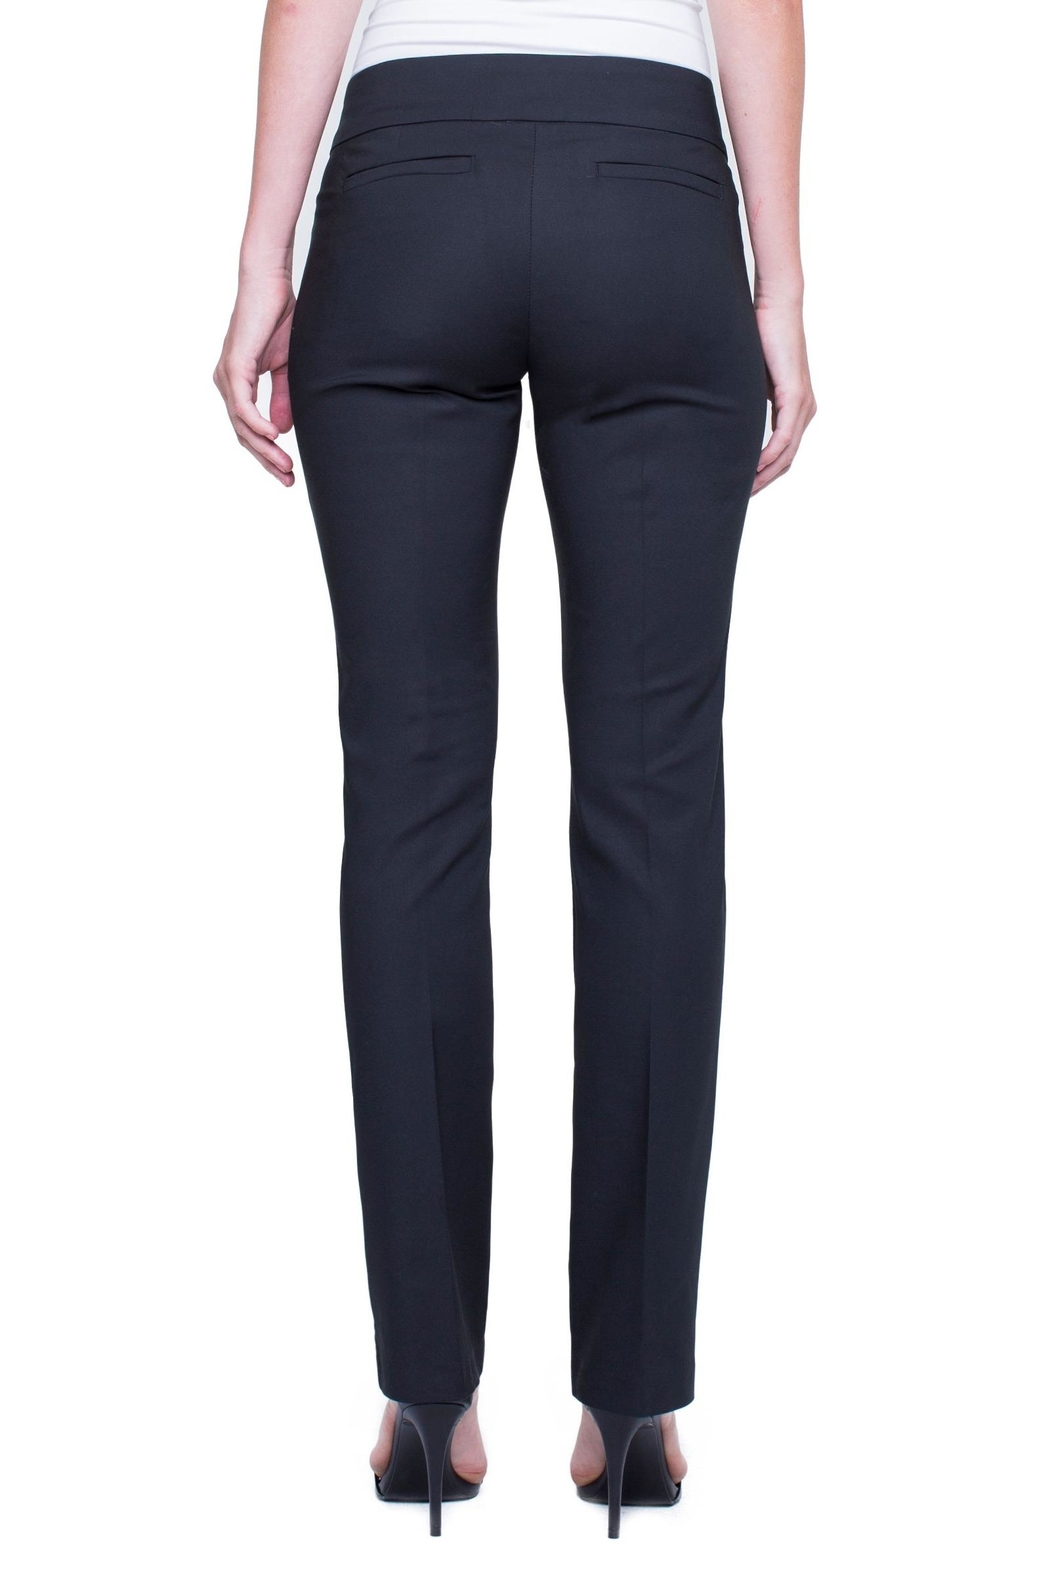 Liverpool Graham Boot-Cut Trouser - Back Cropped Image